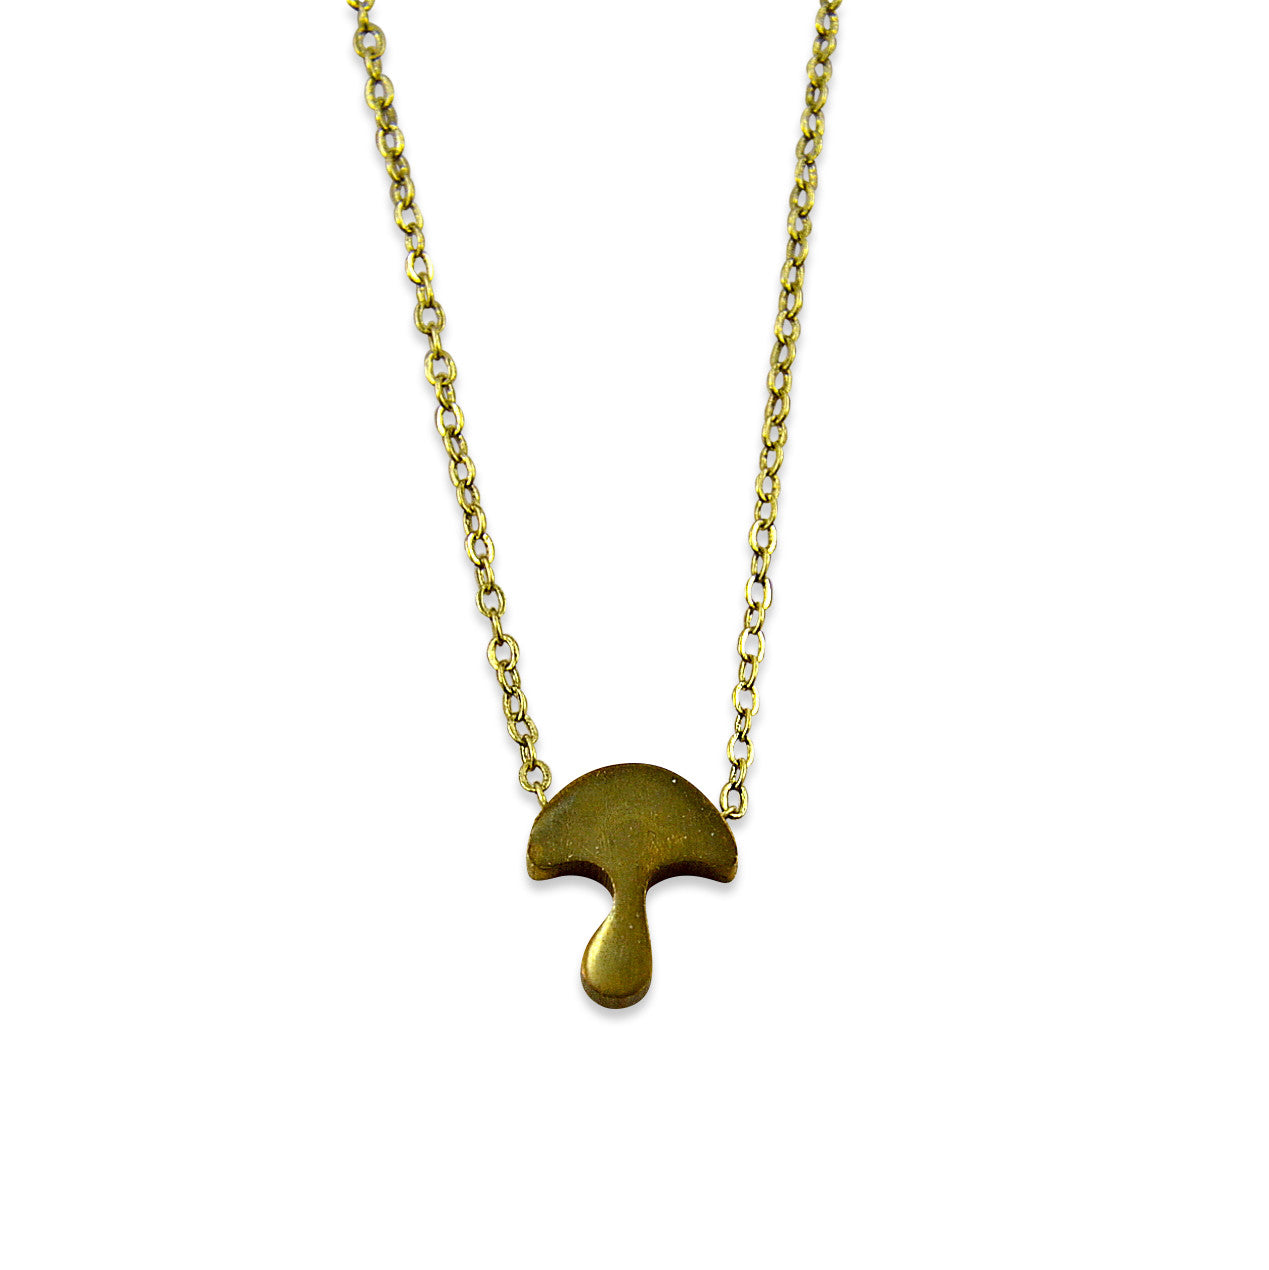 Tiny Mushroom Necklace - Gwen Delicious Jewelry Designs